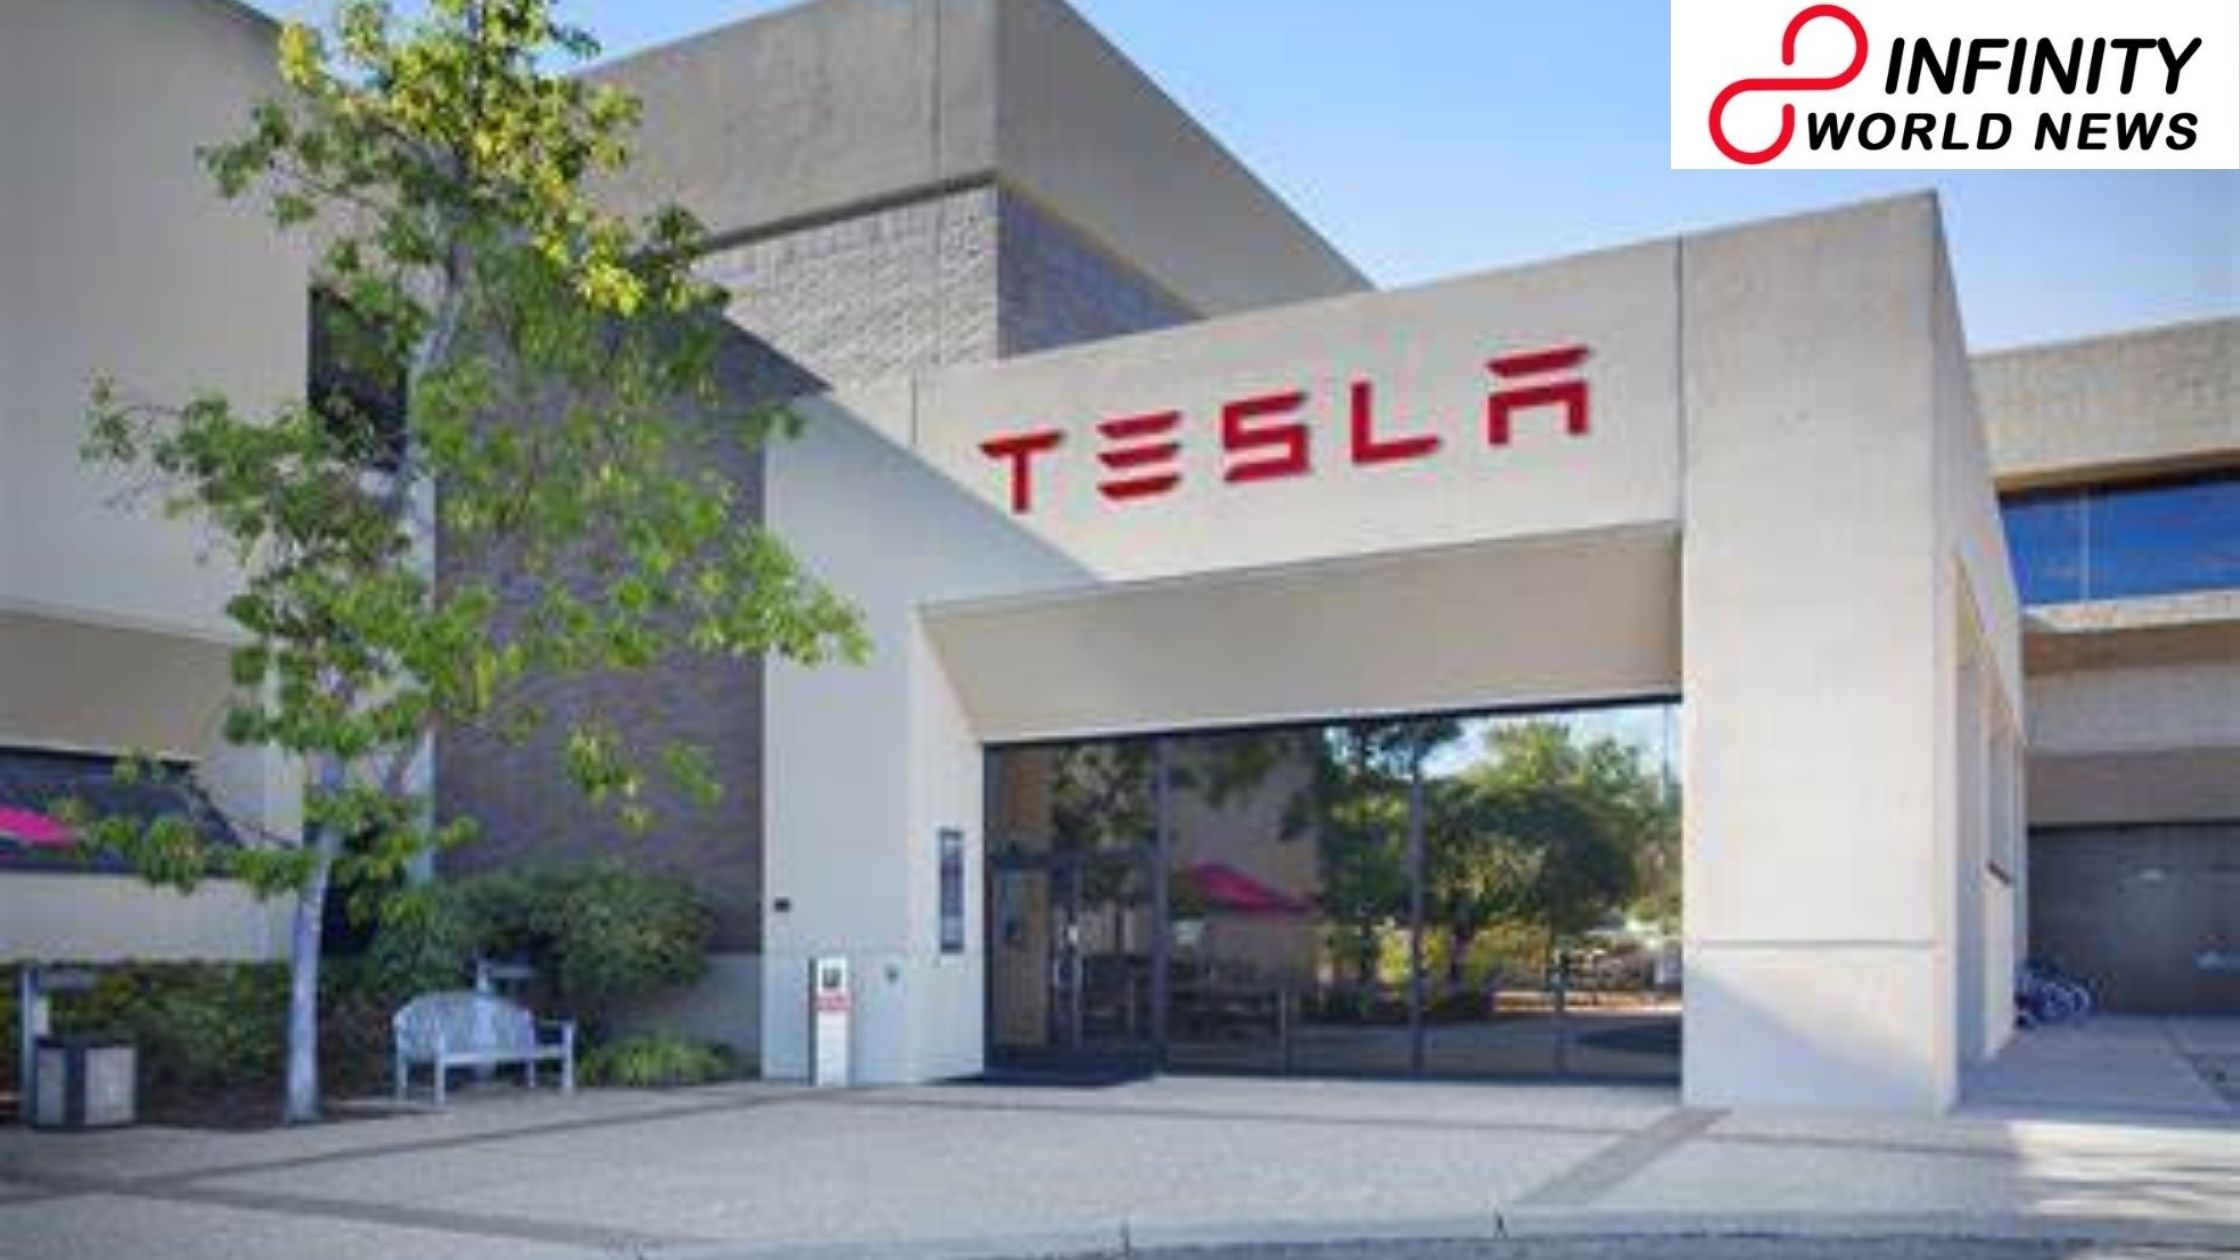 Russian confesses to Tesla ransomware plot